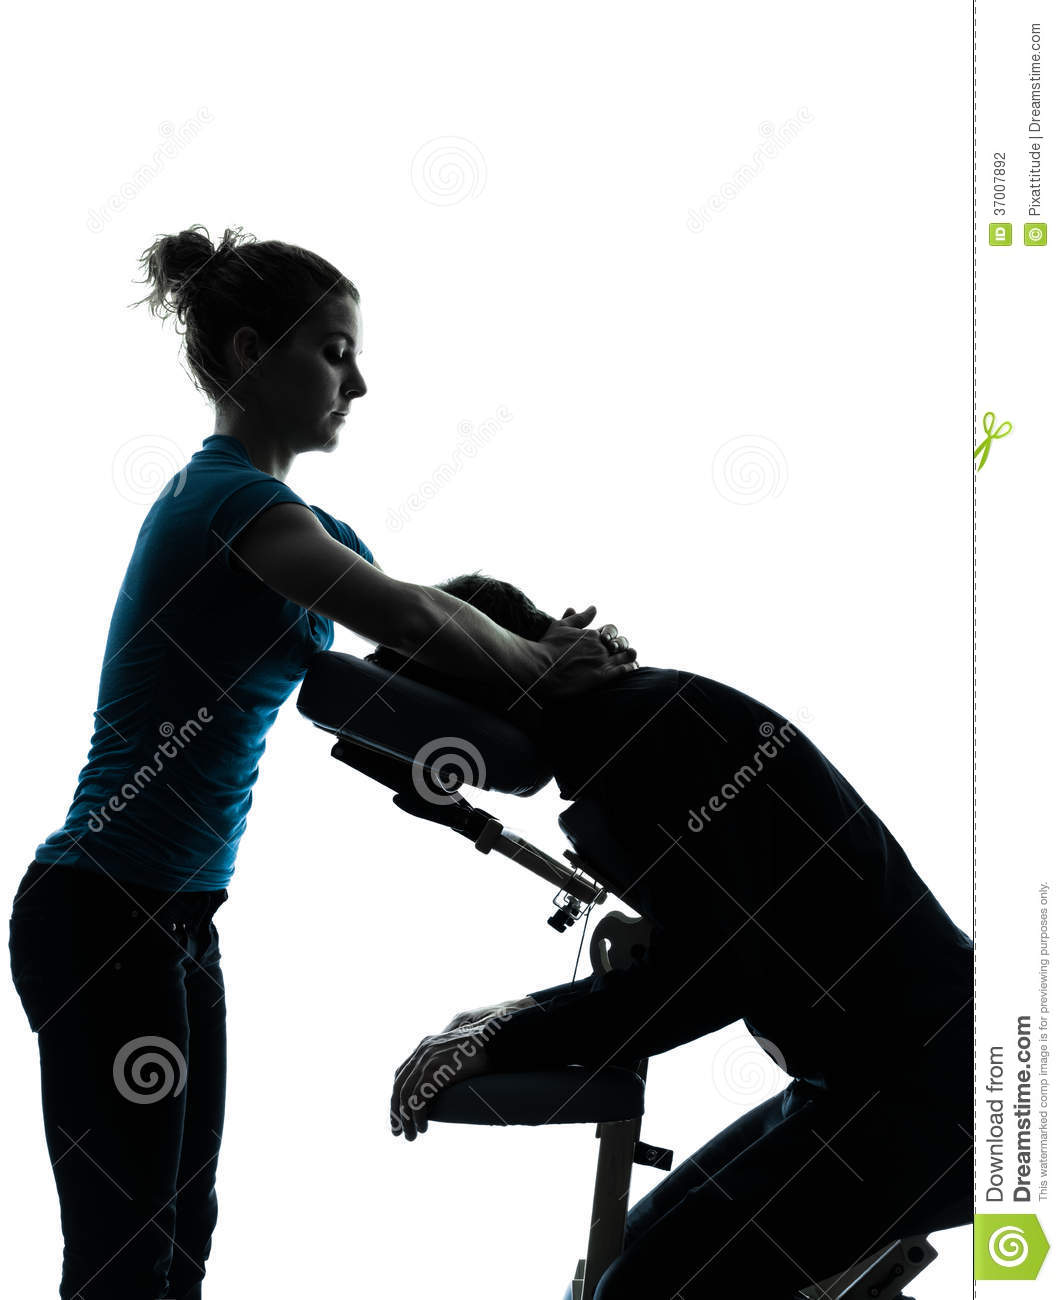 Massage Therapy With Chair Silhouette Stock Photo - Image ...